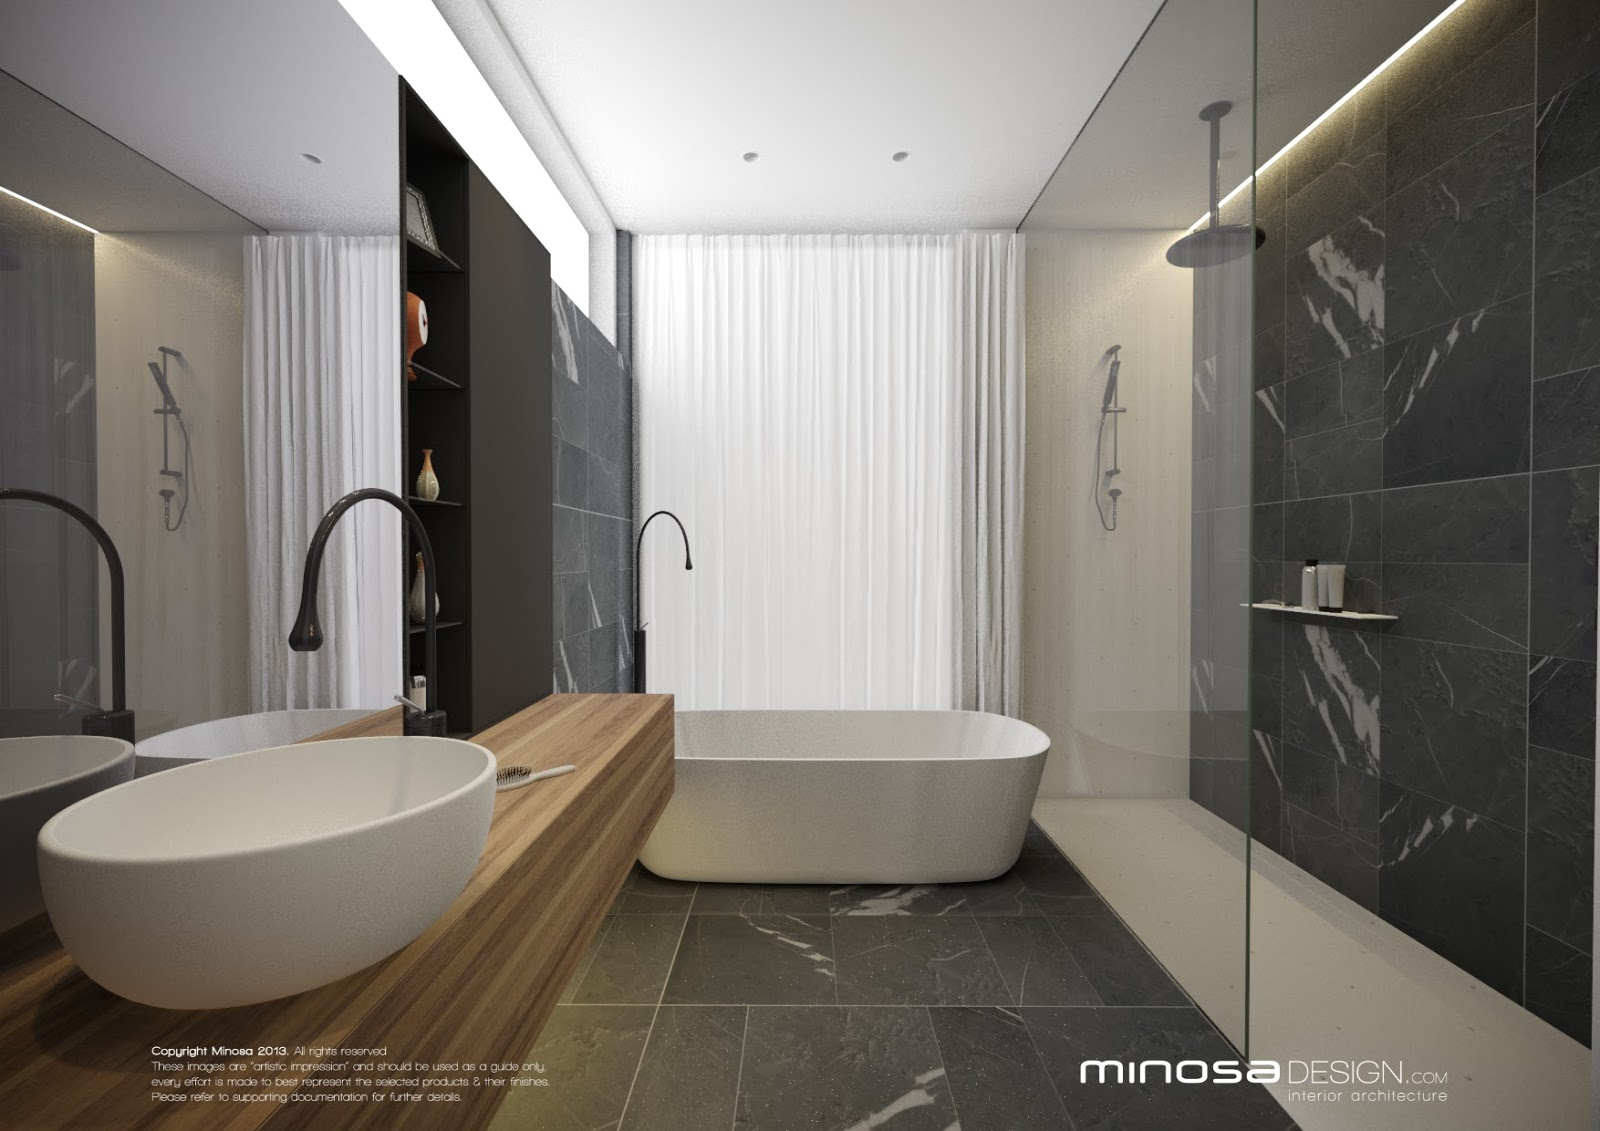 Minosa modern bathroom design to share for Design of the bathroom